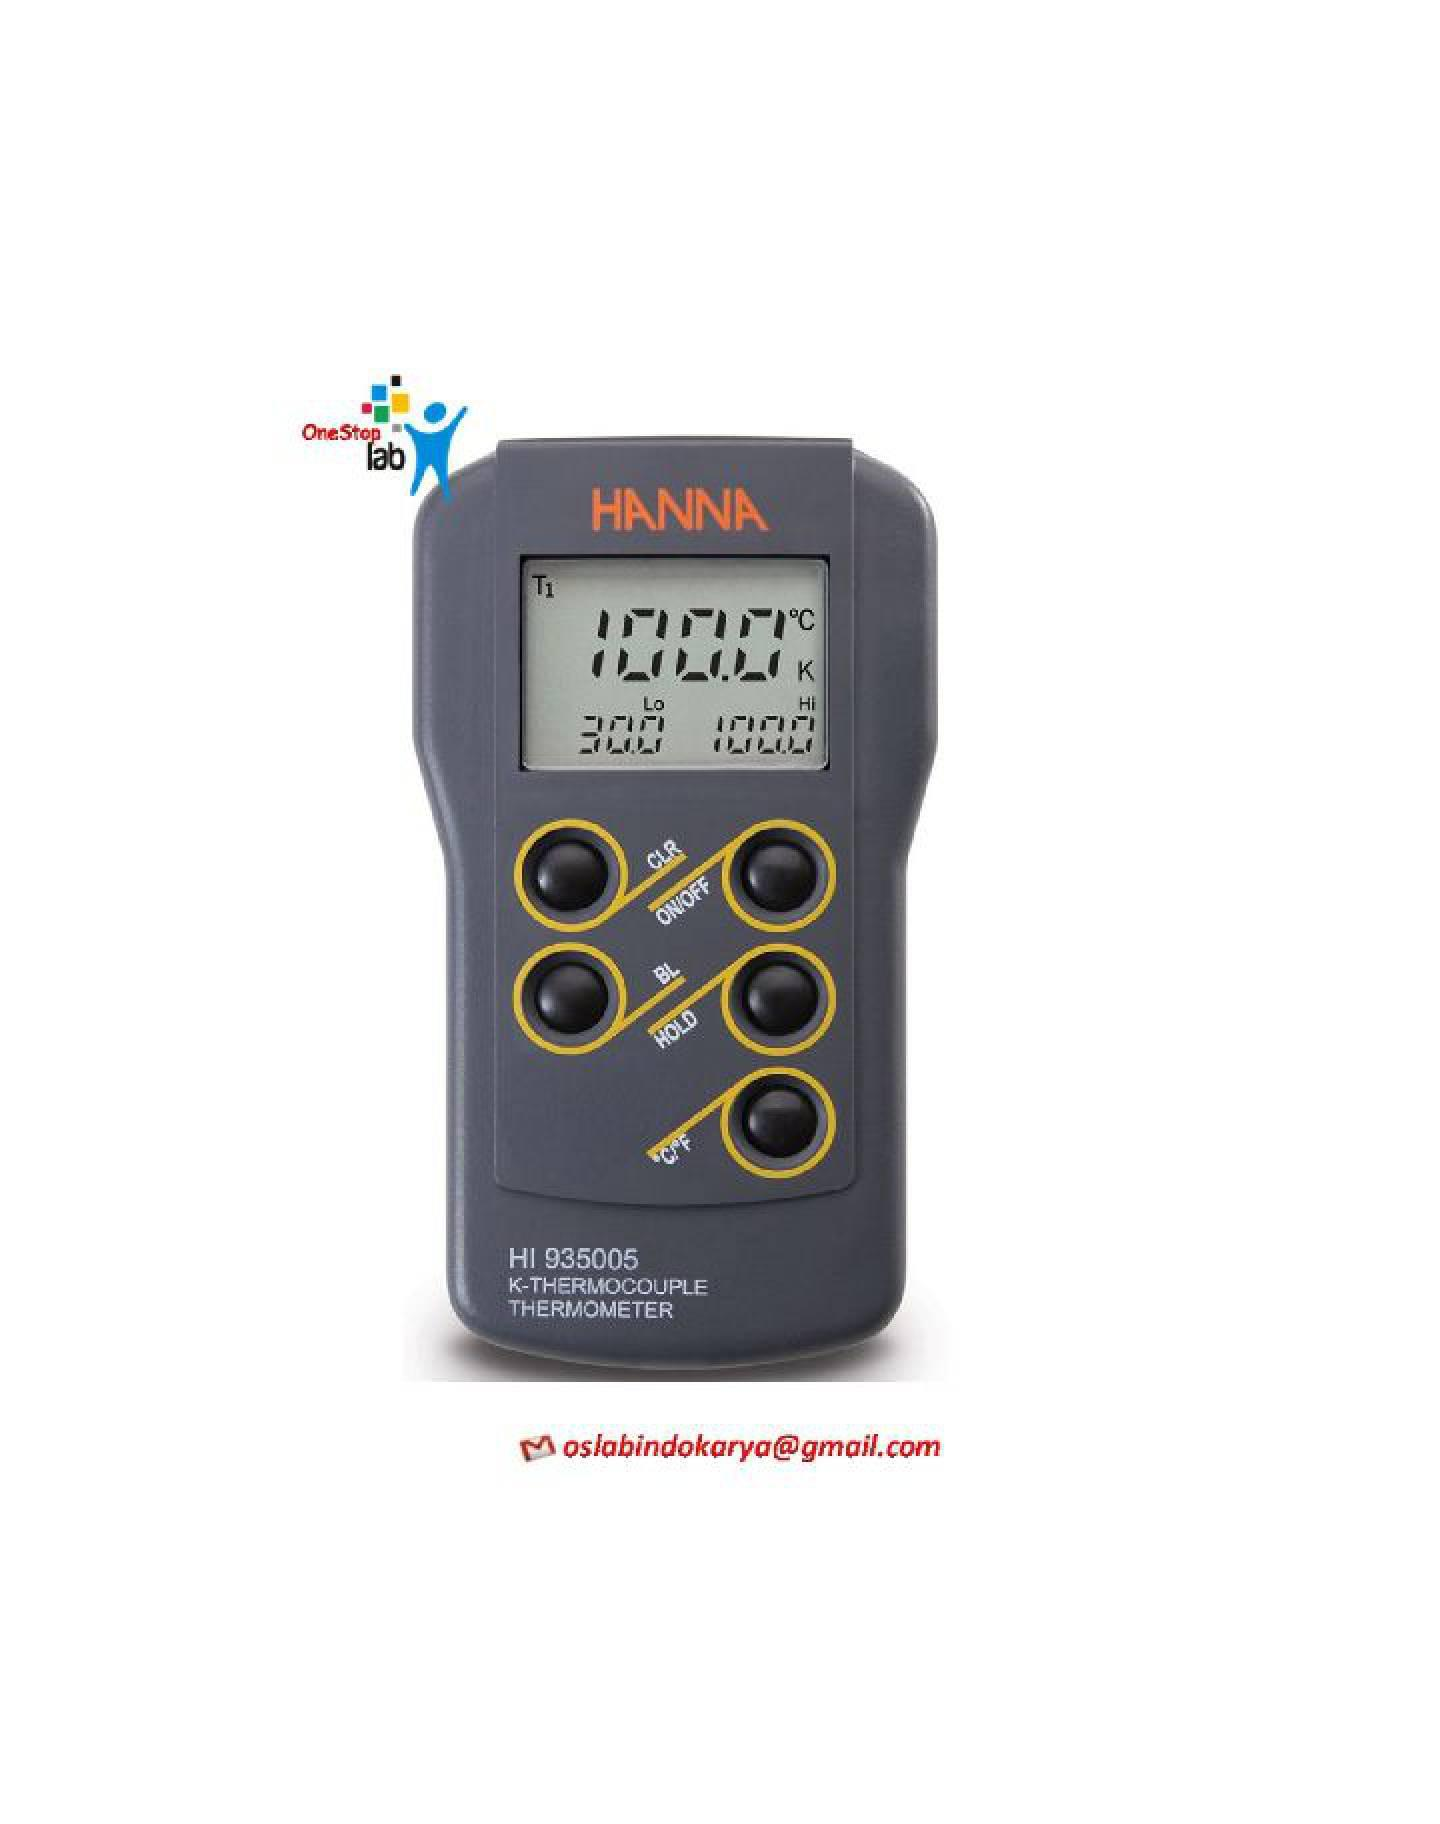 HANNA HI 935005 Digital Thermometer Thermocouple Type K, Waterproof